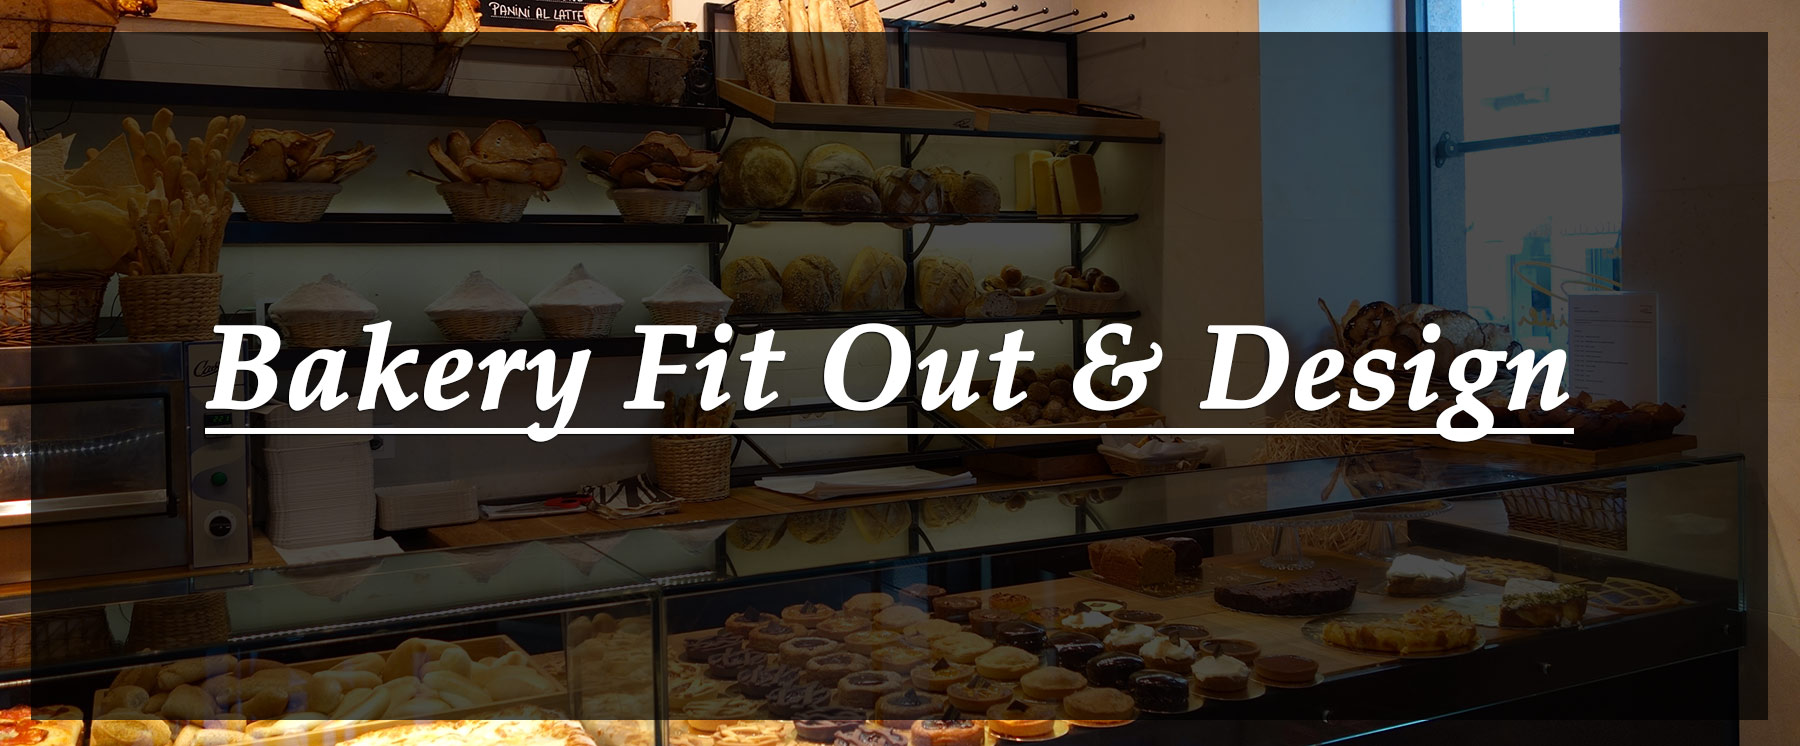 Bakery Fit Out & Design in Perth - HKN